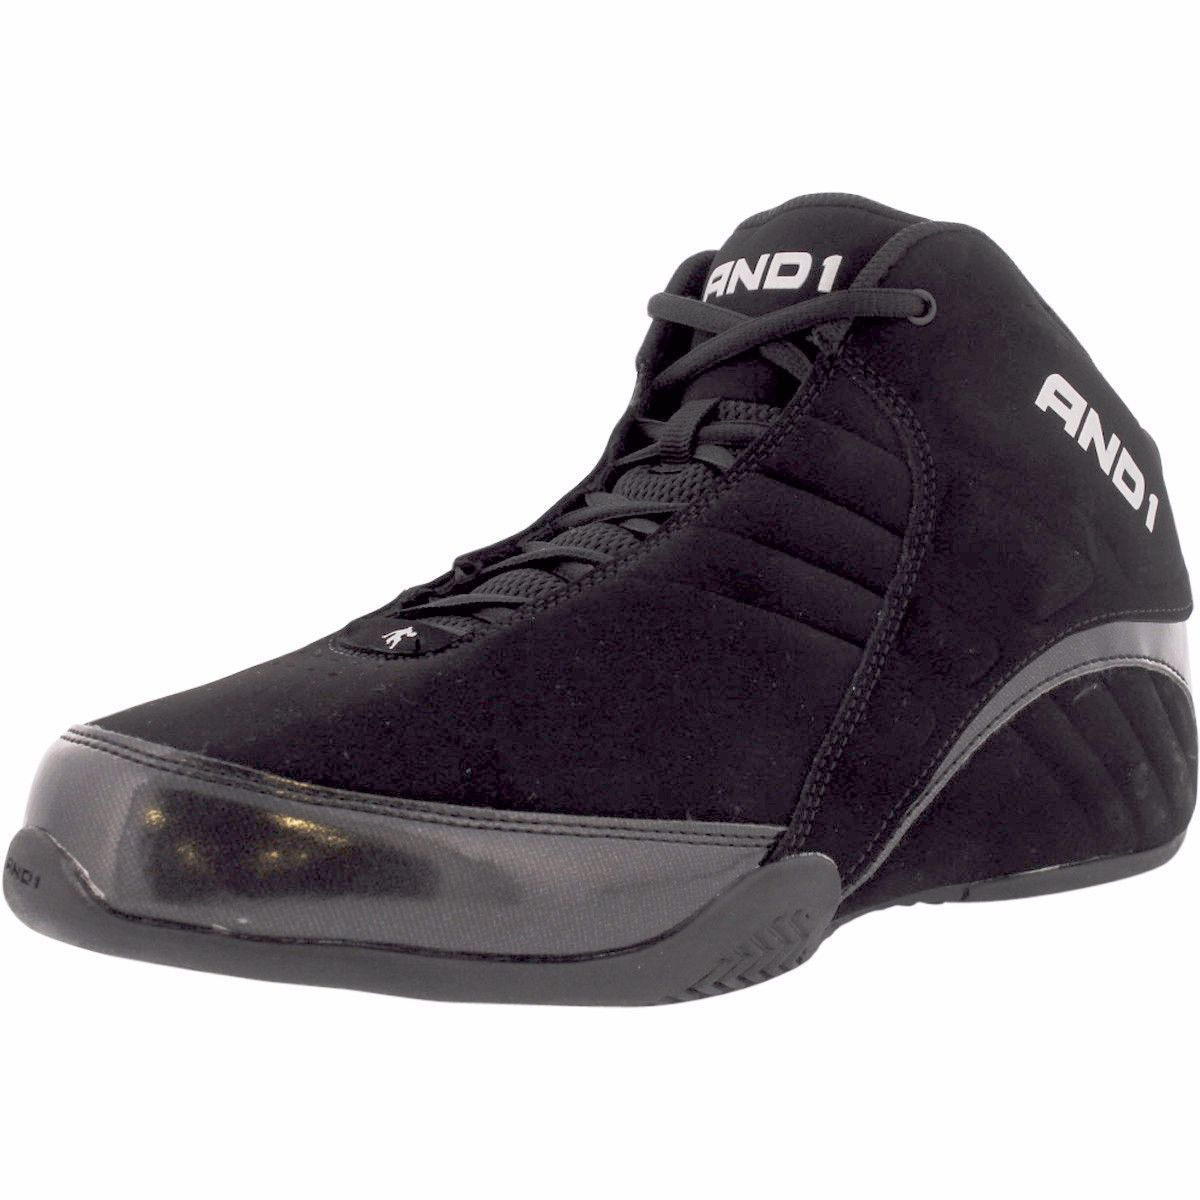 1ab85a42da8 AND1 - Men s Rockets 3.0 Sneakers - Black